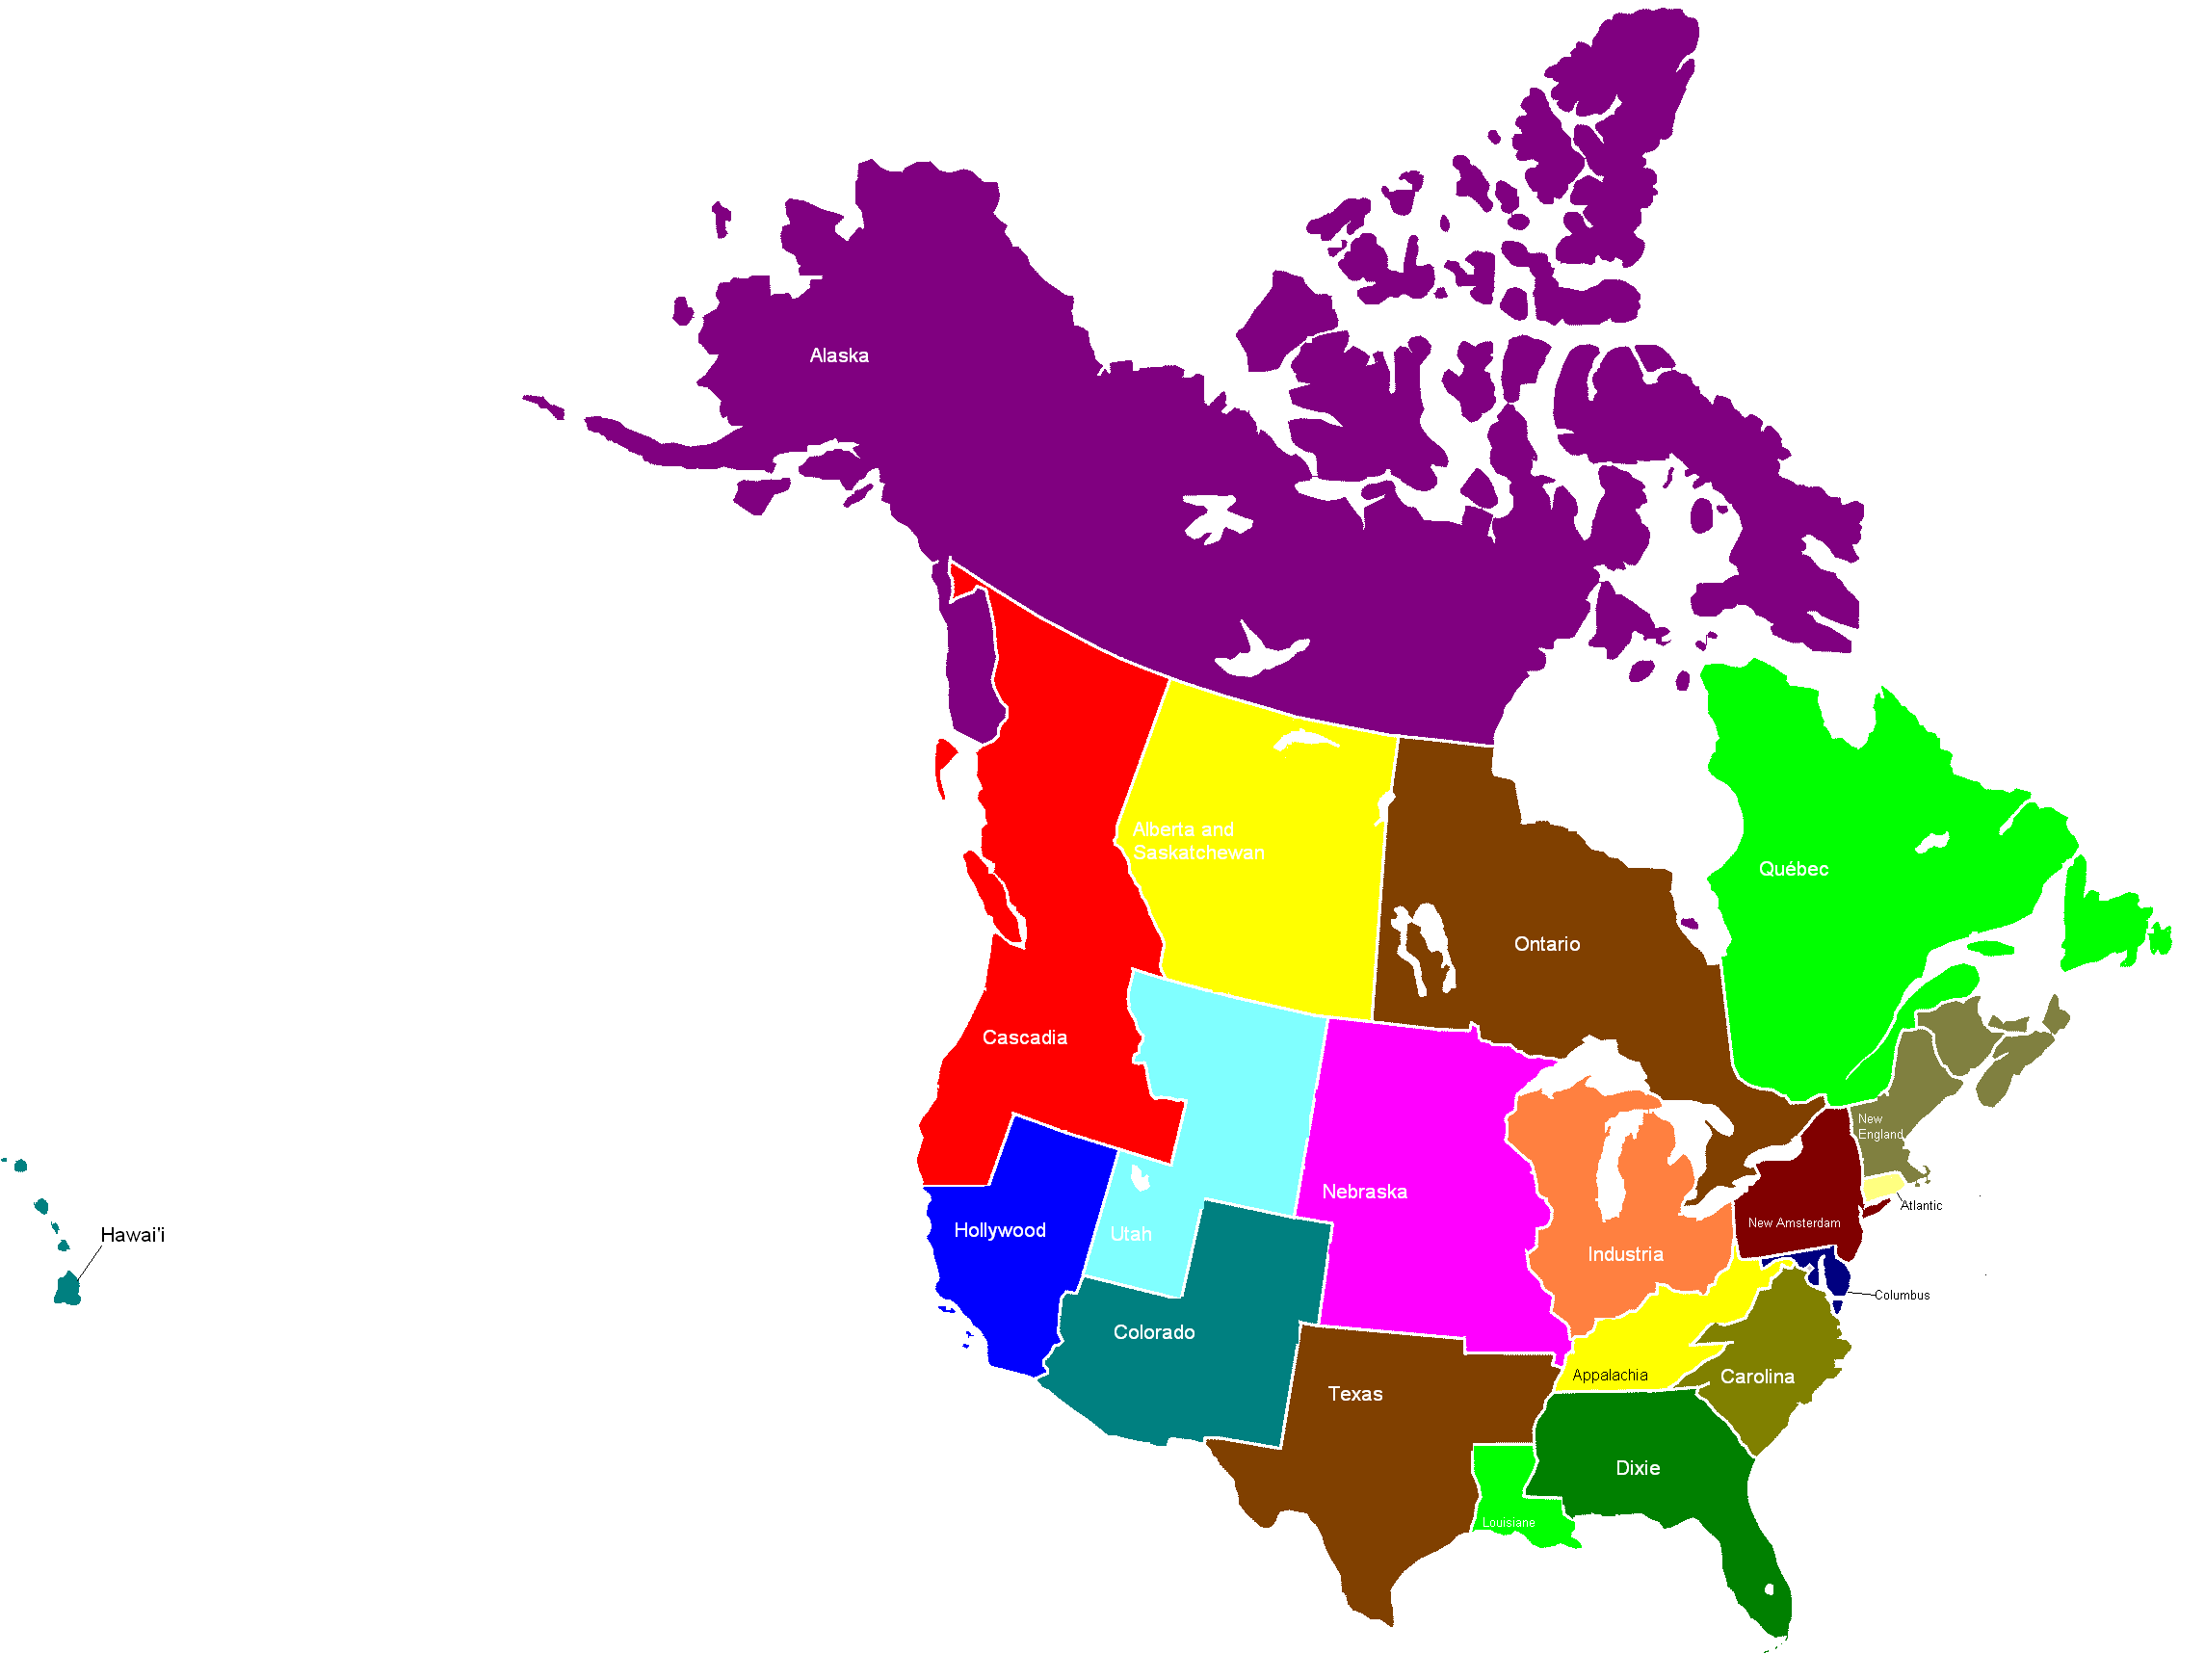 Best Images About Alternate North America Maps On Pinterest - Map of usa with deserts